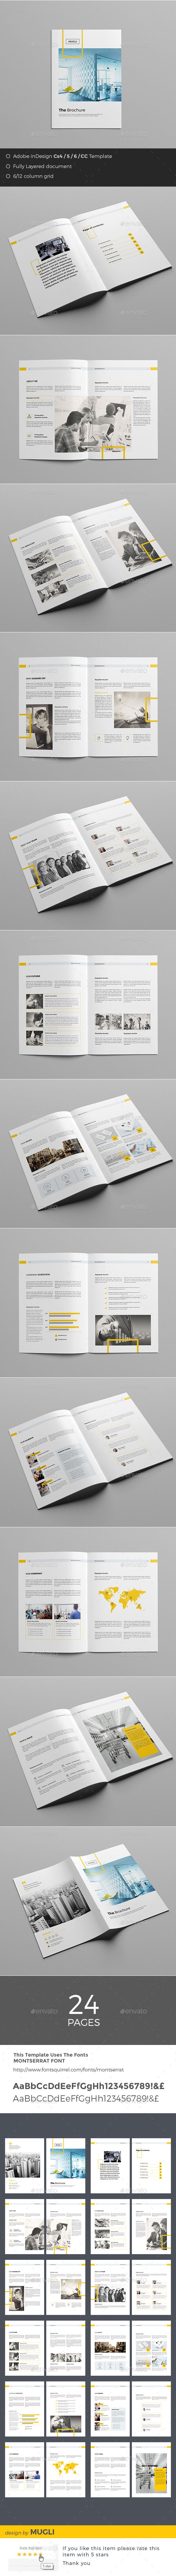 The Brochure Template InDesign INDD. Download here: https://graphicriver.net/item/the-brochure/17469521?ref=ksioks